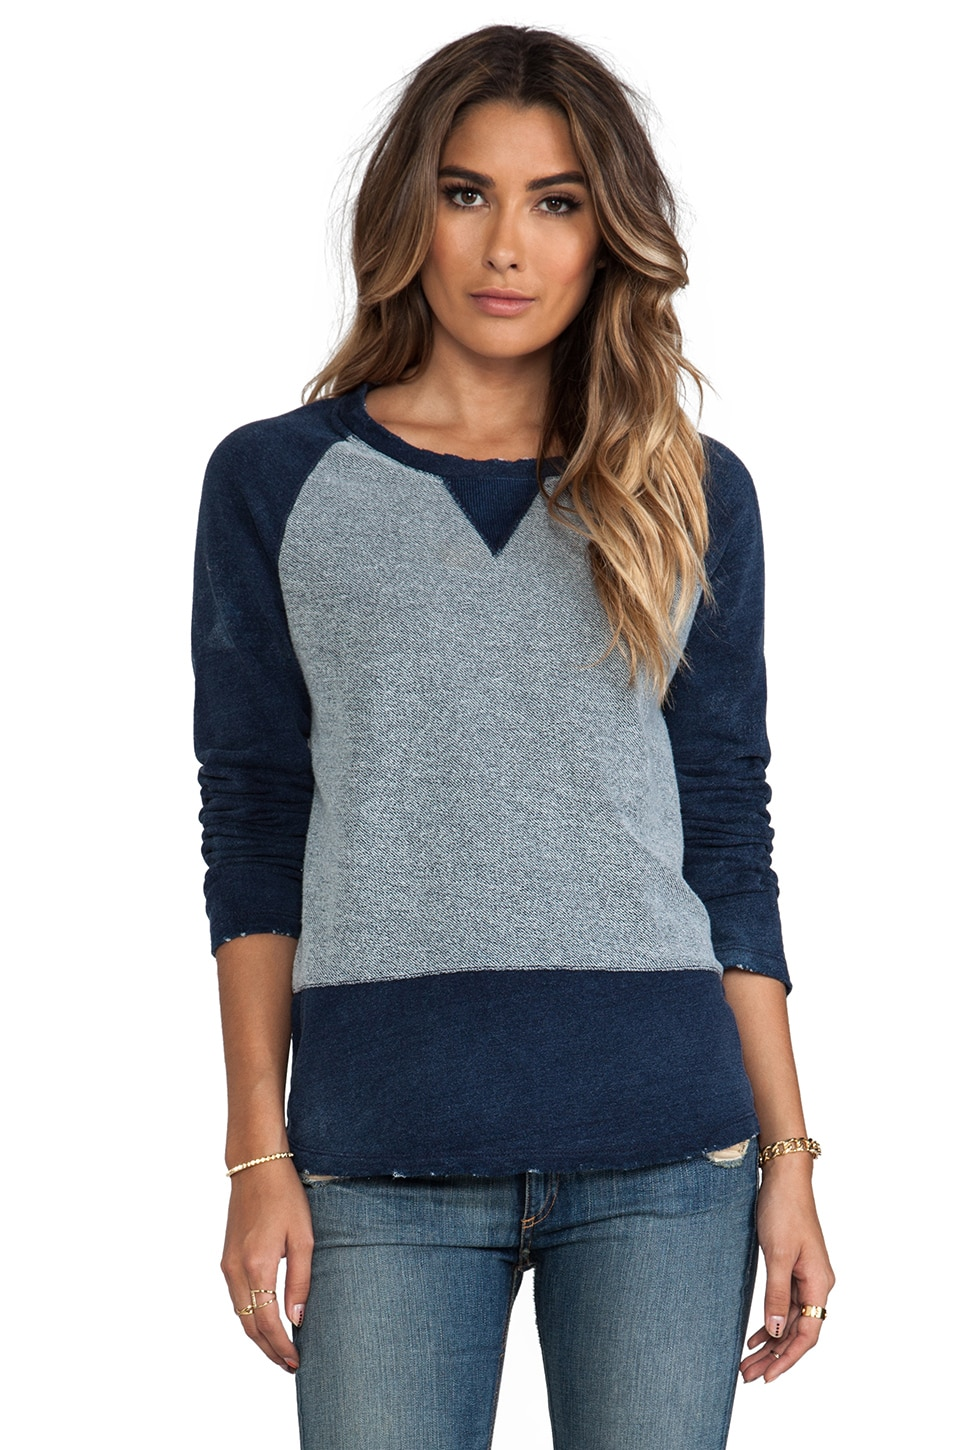 Gypsy 05 Long Sleeve Raglan Sweater in Washed Indigo